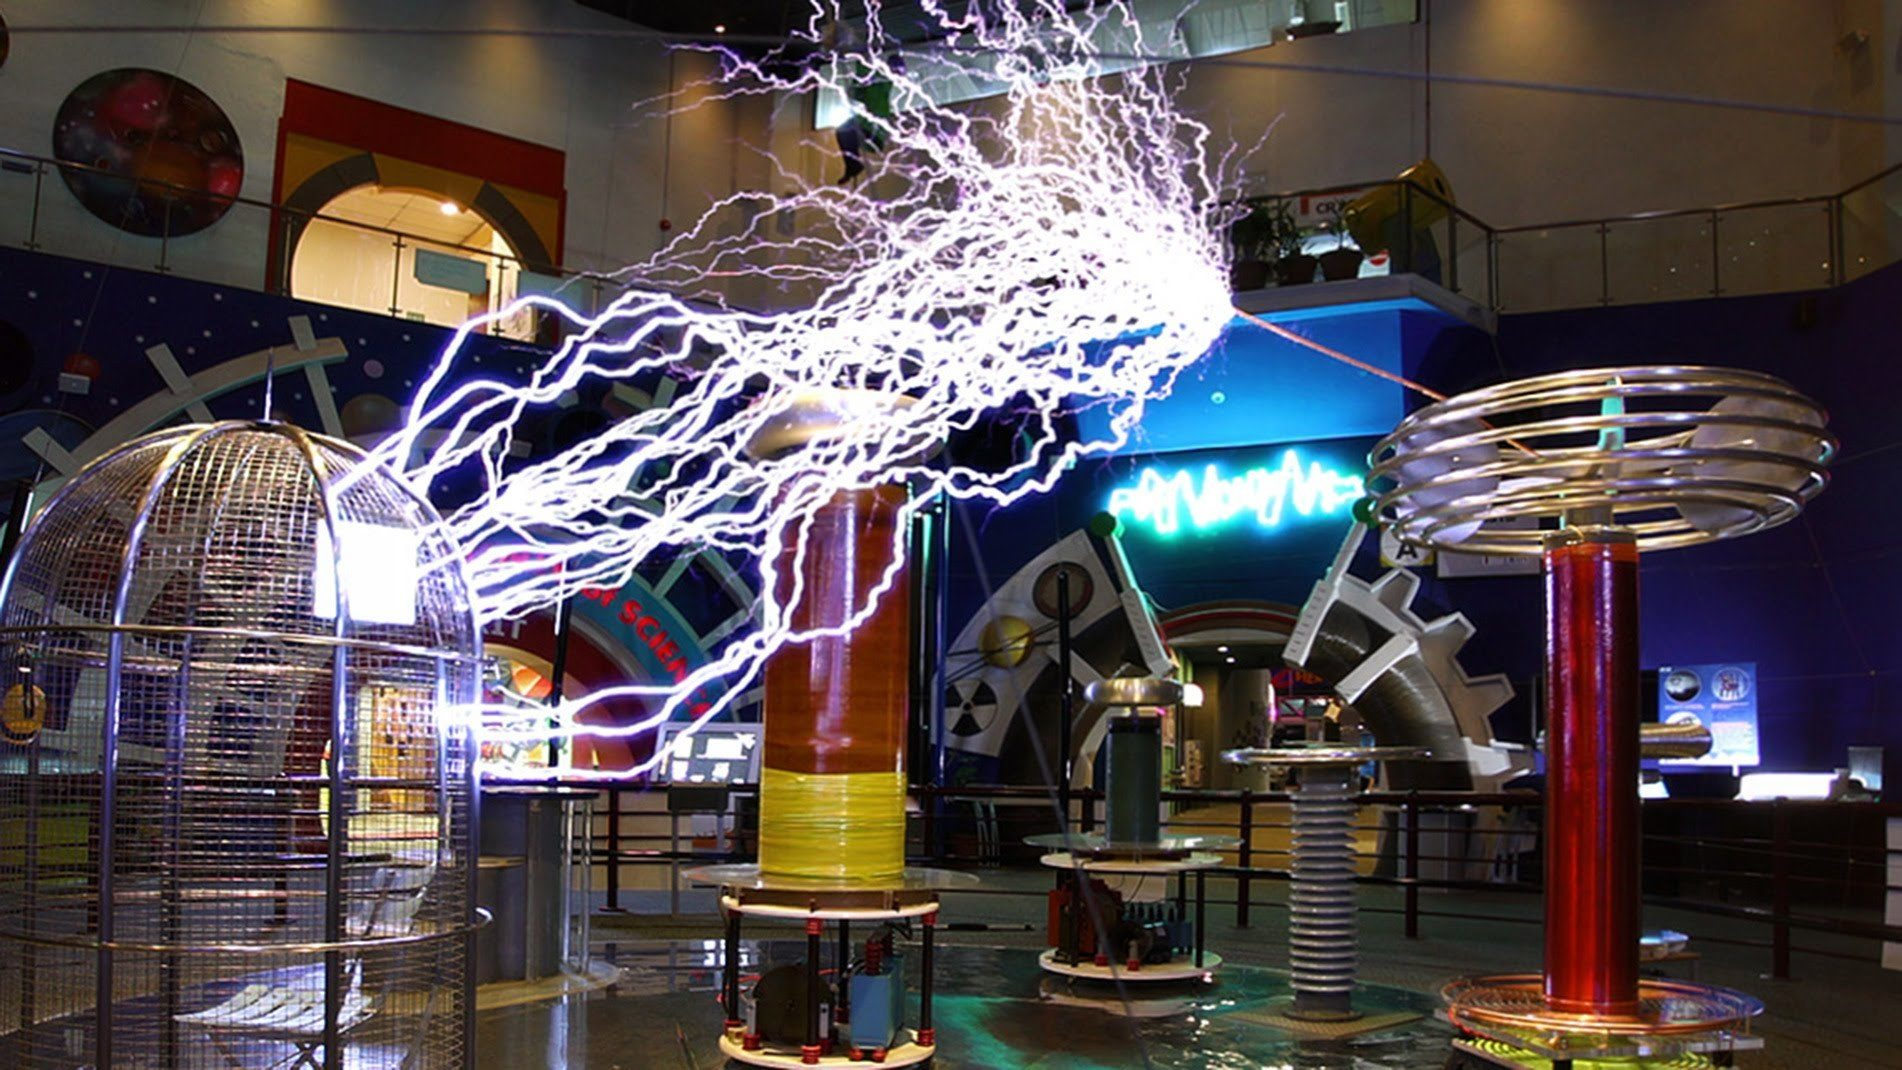 science singapore centre center omni theatre tesla coil ticket exhibits visit interactive places going know need things travel before gain